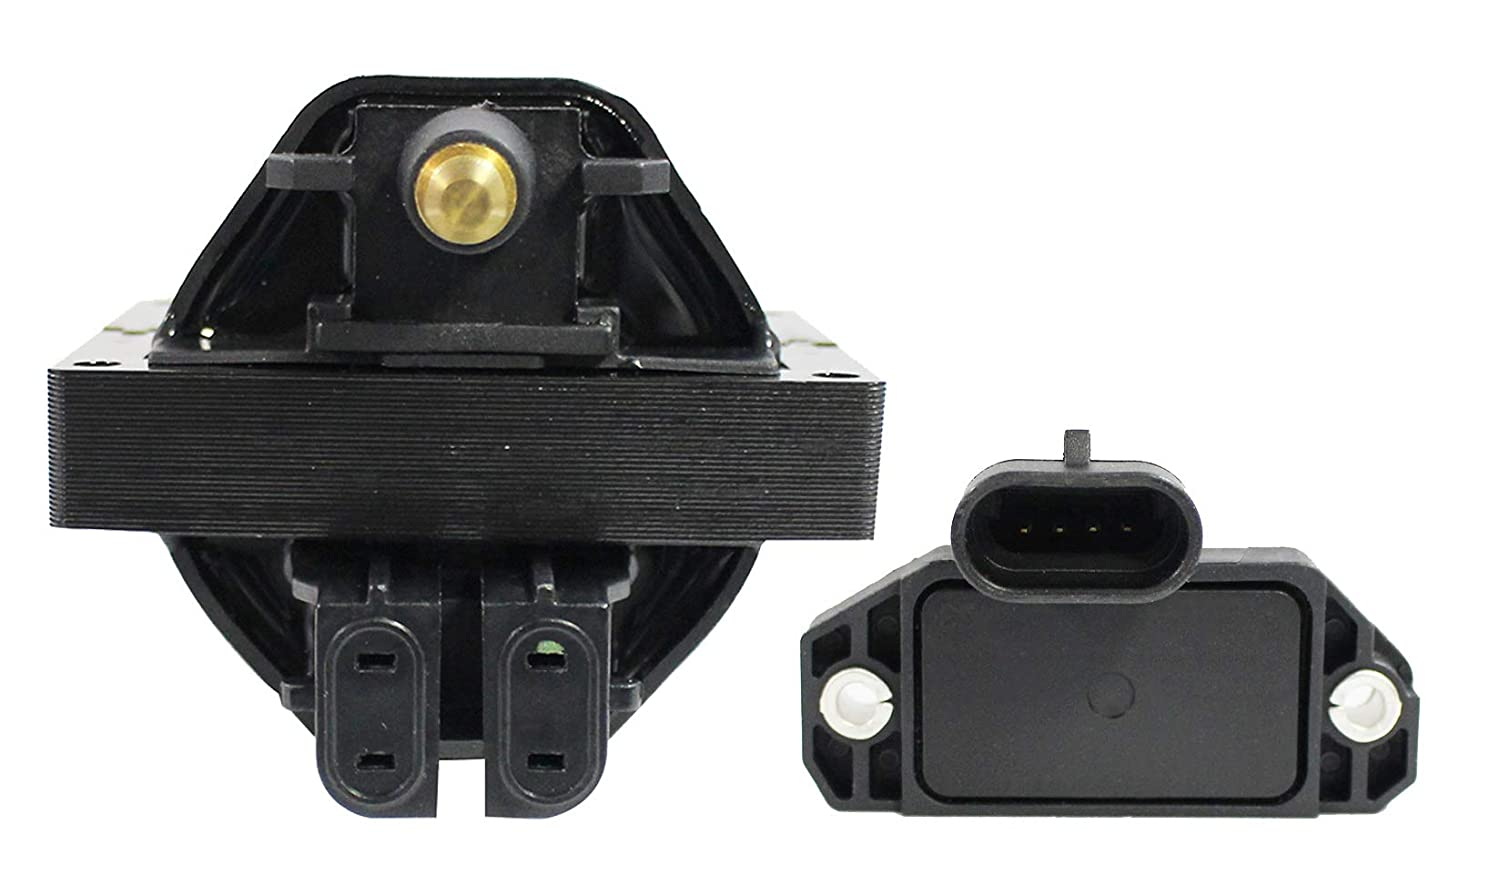 Ignition Coil and Module System Kit for 1994 1995 Buick Commercial Chassis Roadmaster Cadillac Fleetwood Chevy Camaro Caprice Corvette Impala Pontiac Firebird 4.3L 5.7L V8